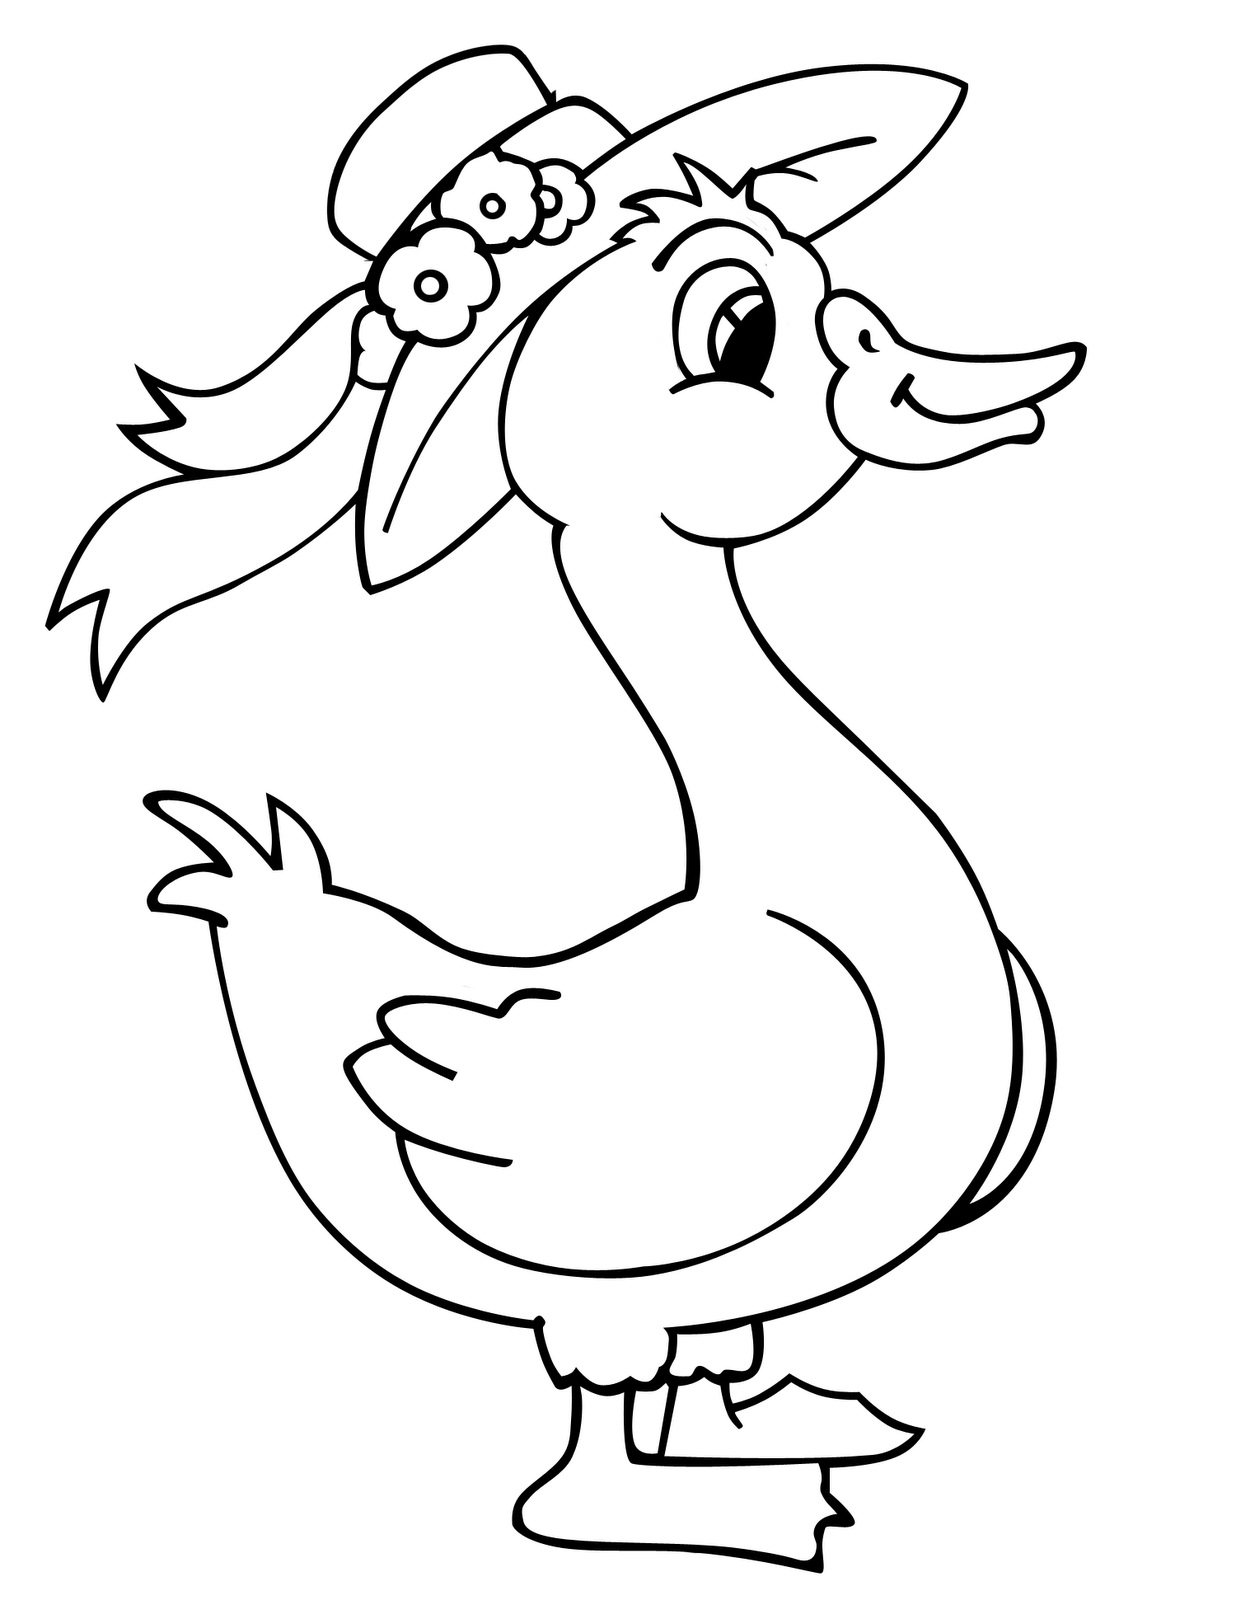 coloring duck pictures free printable duck coloring pages for kids animal place duck coloring pictures